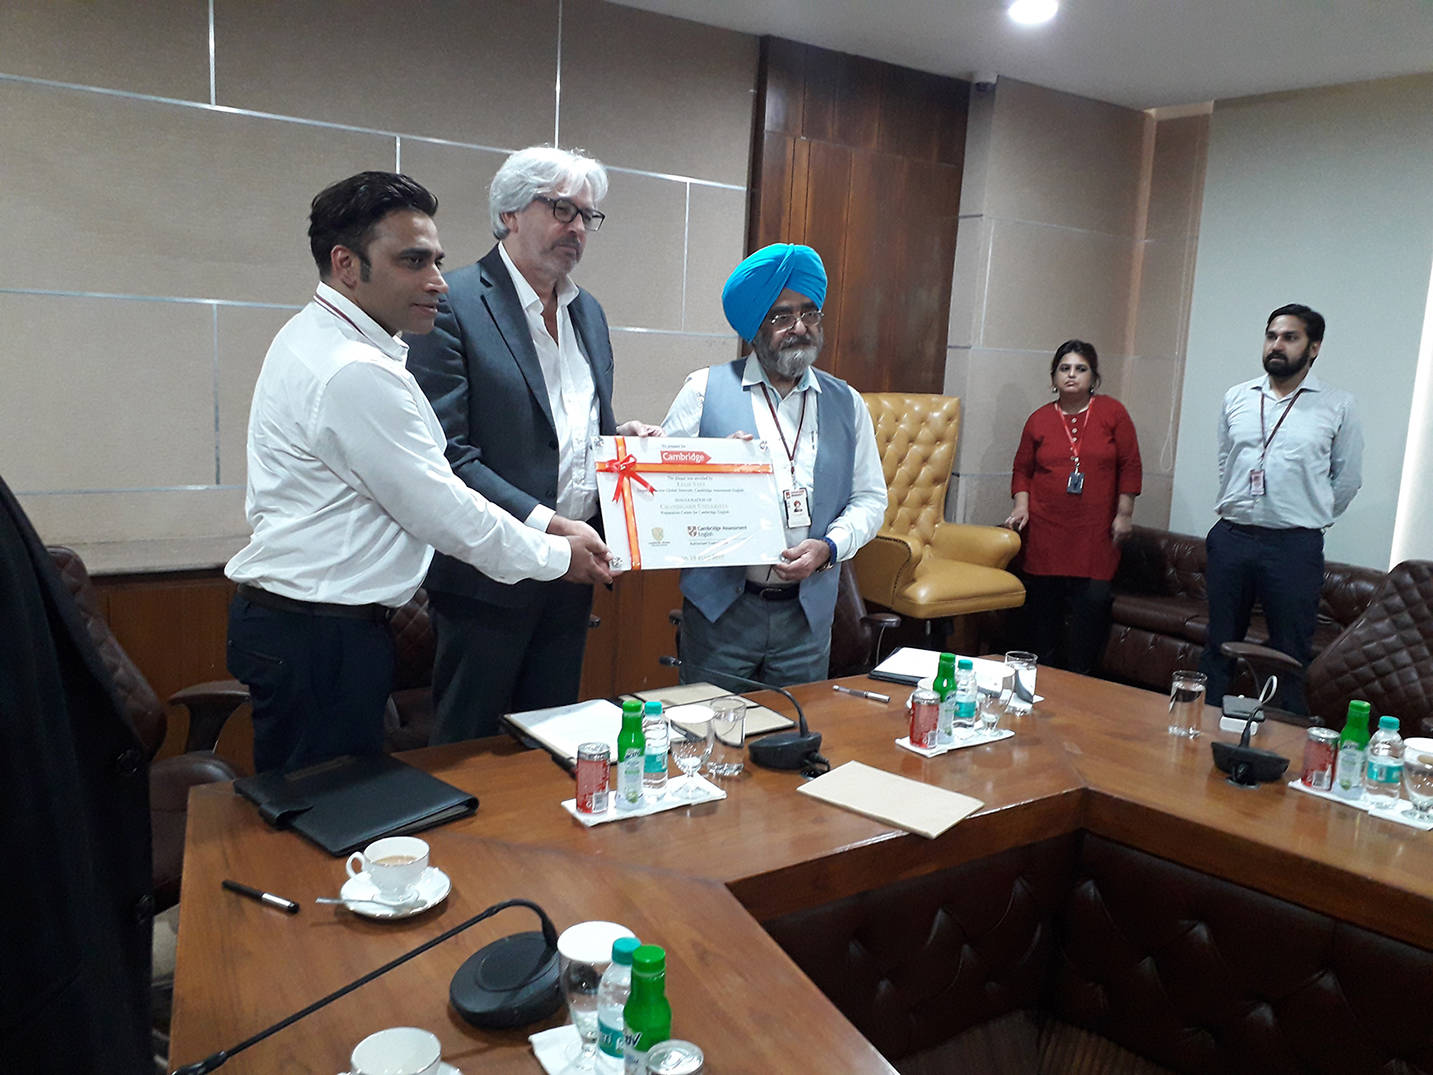 Cambridge Assessment signs MoU with Chandigarh based university